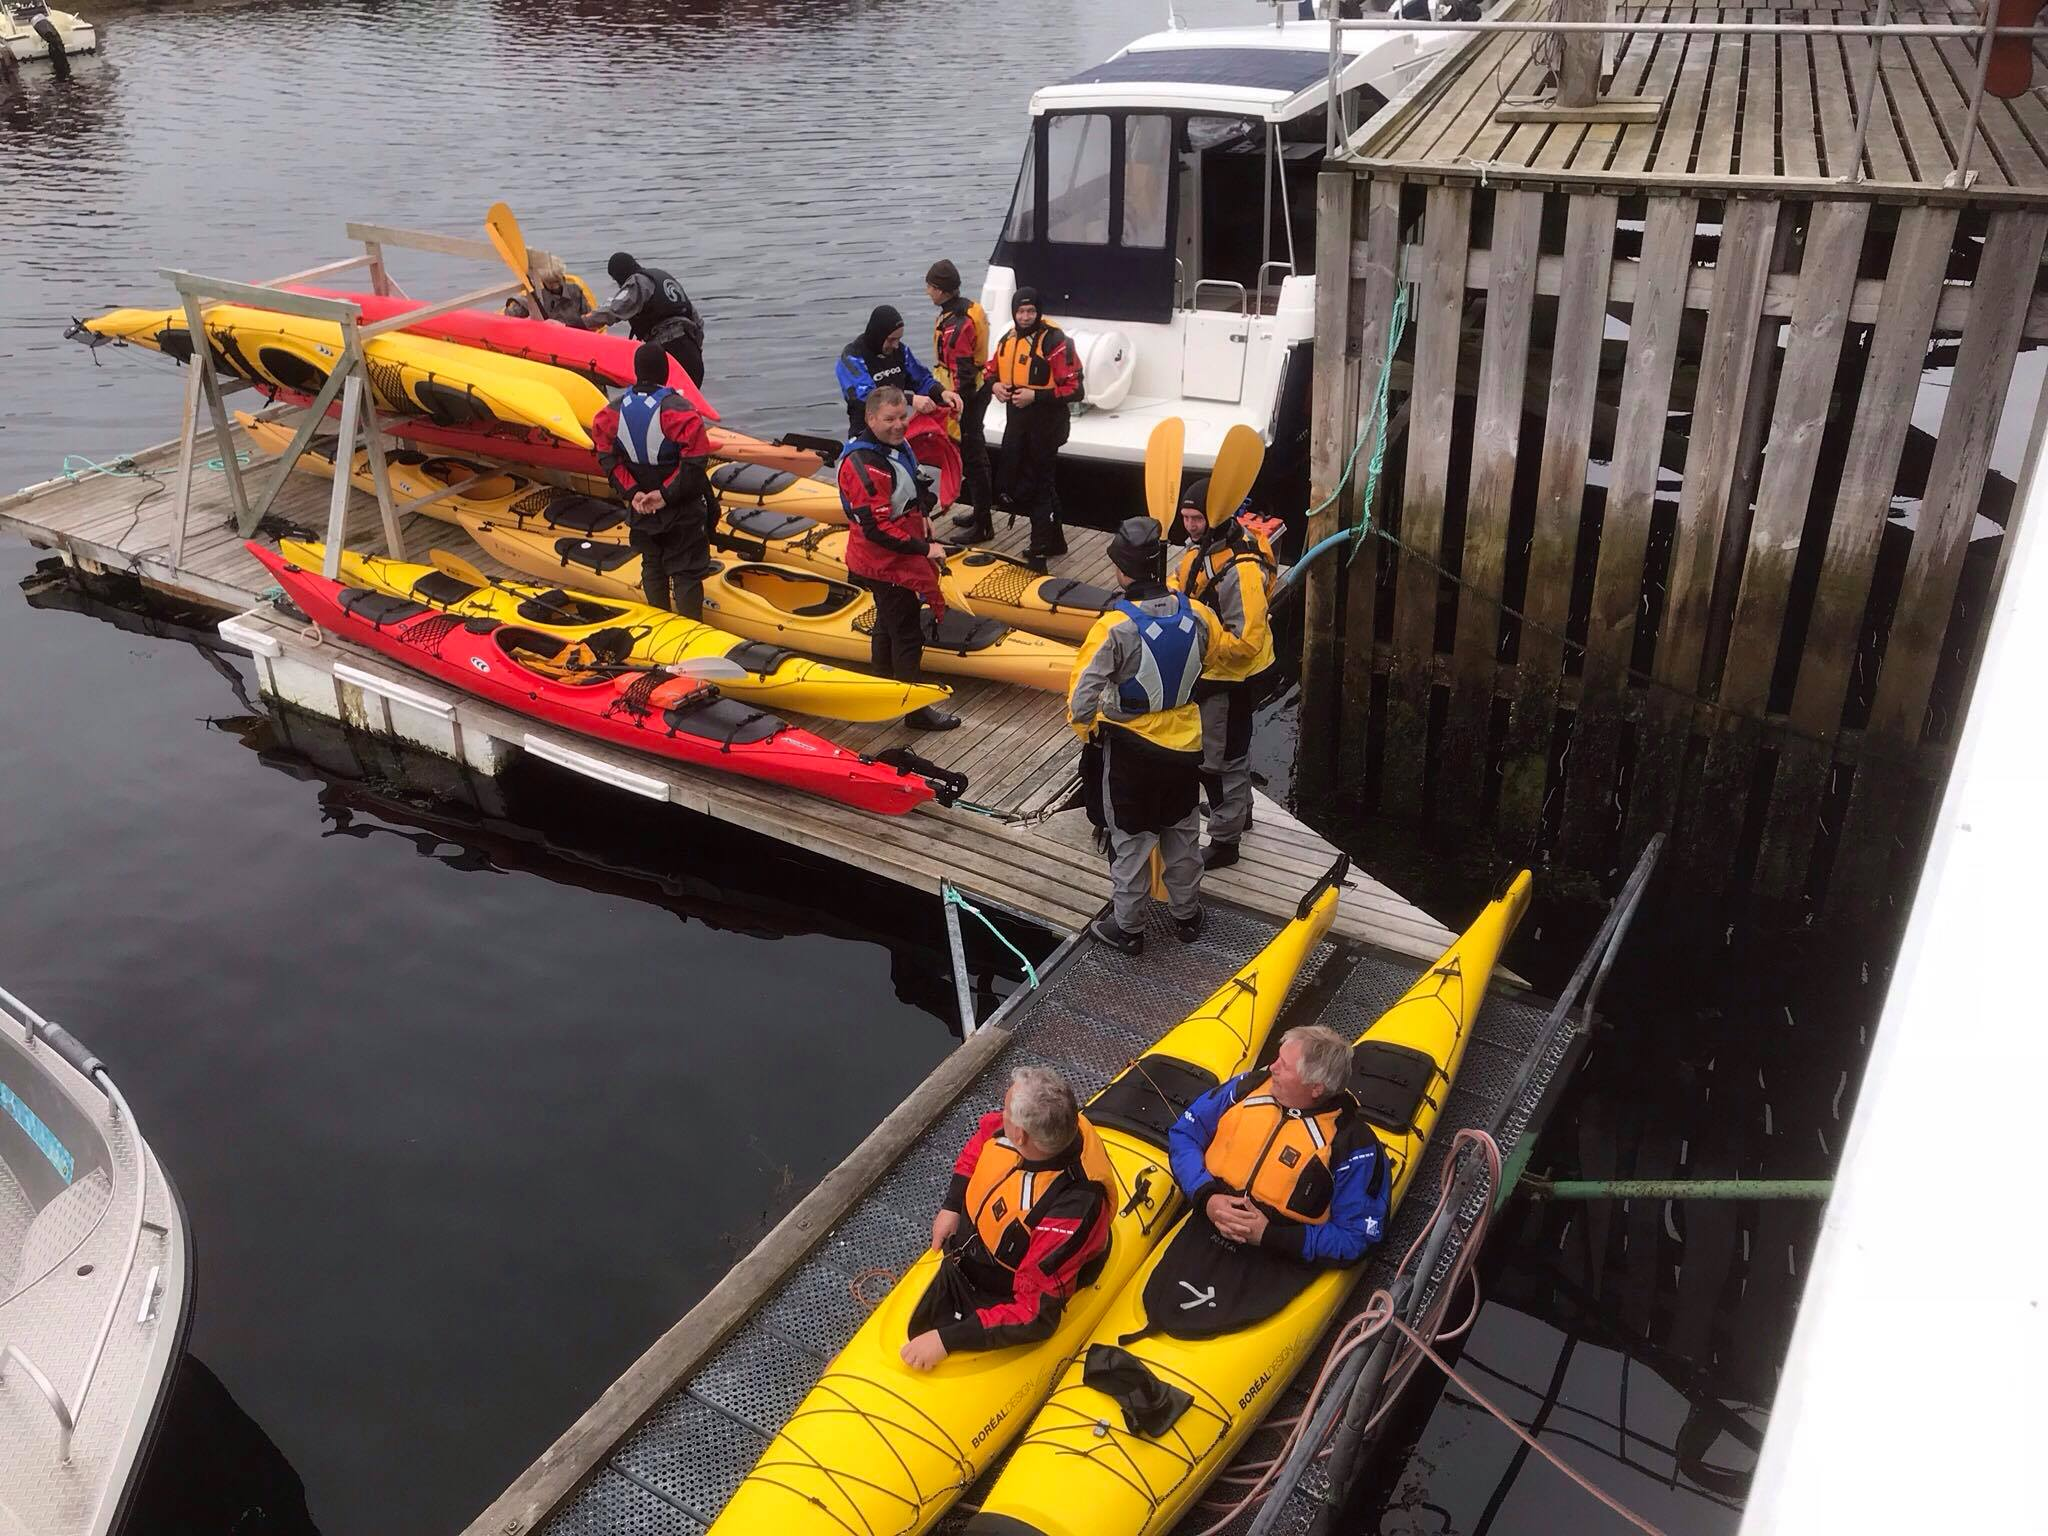 Kayak course - We offer introductory courses to kayaking. The course takes 3 hours and takes place in the area around Nes. The fee is 1100 NOK and includes a drysuit to use during the course.